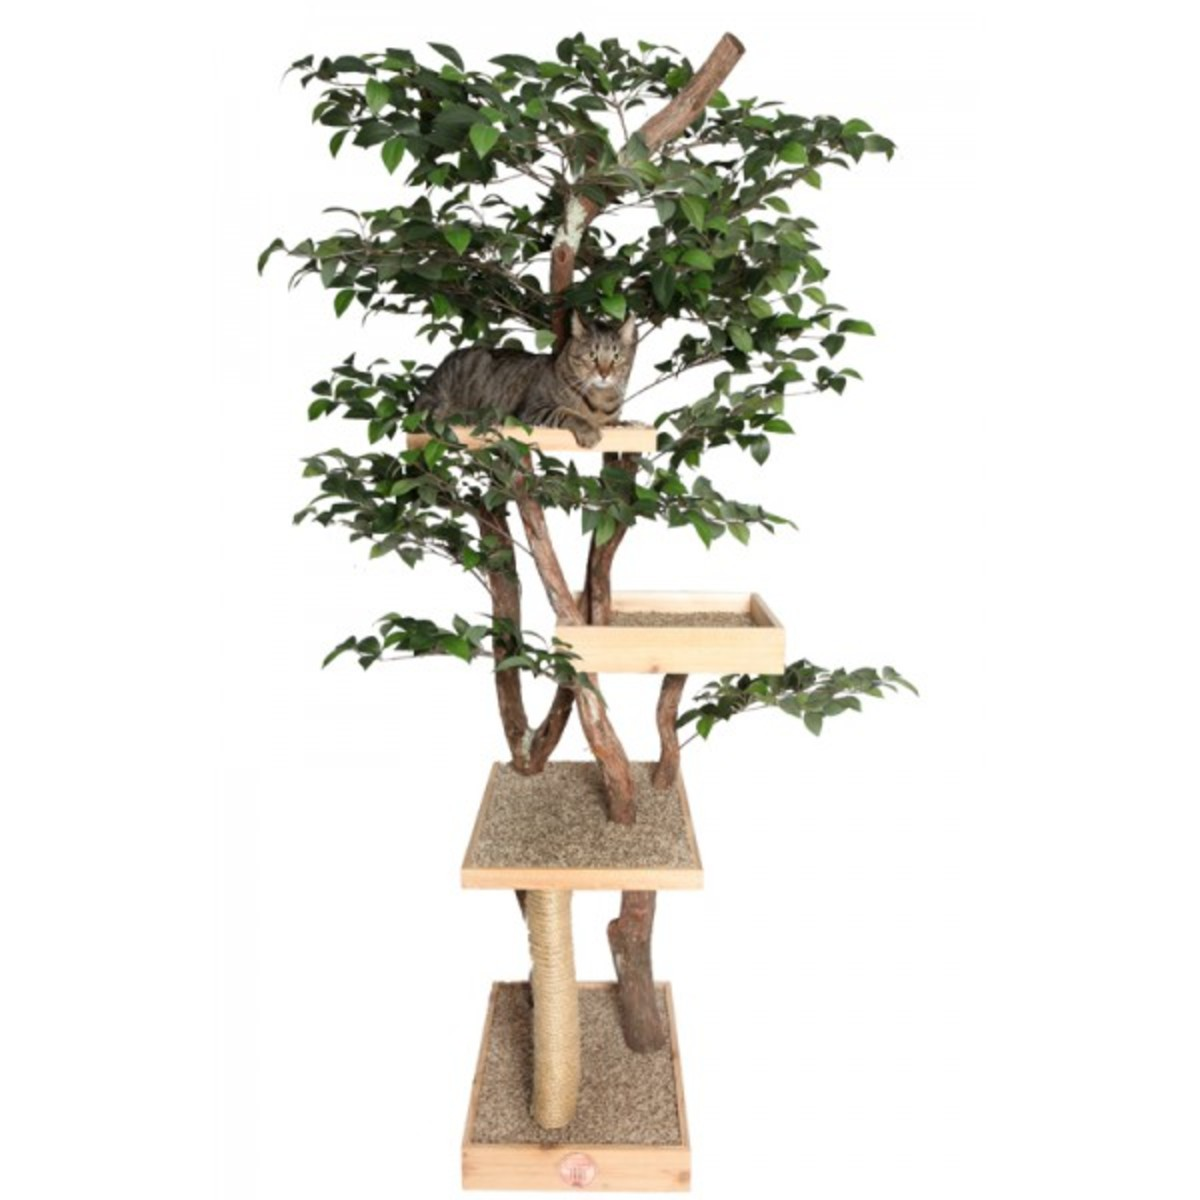 Cat Tree with leaves and branches